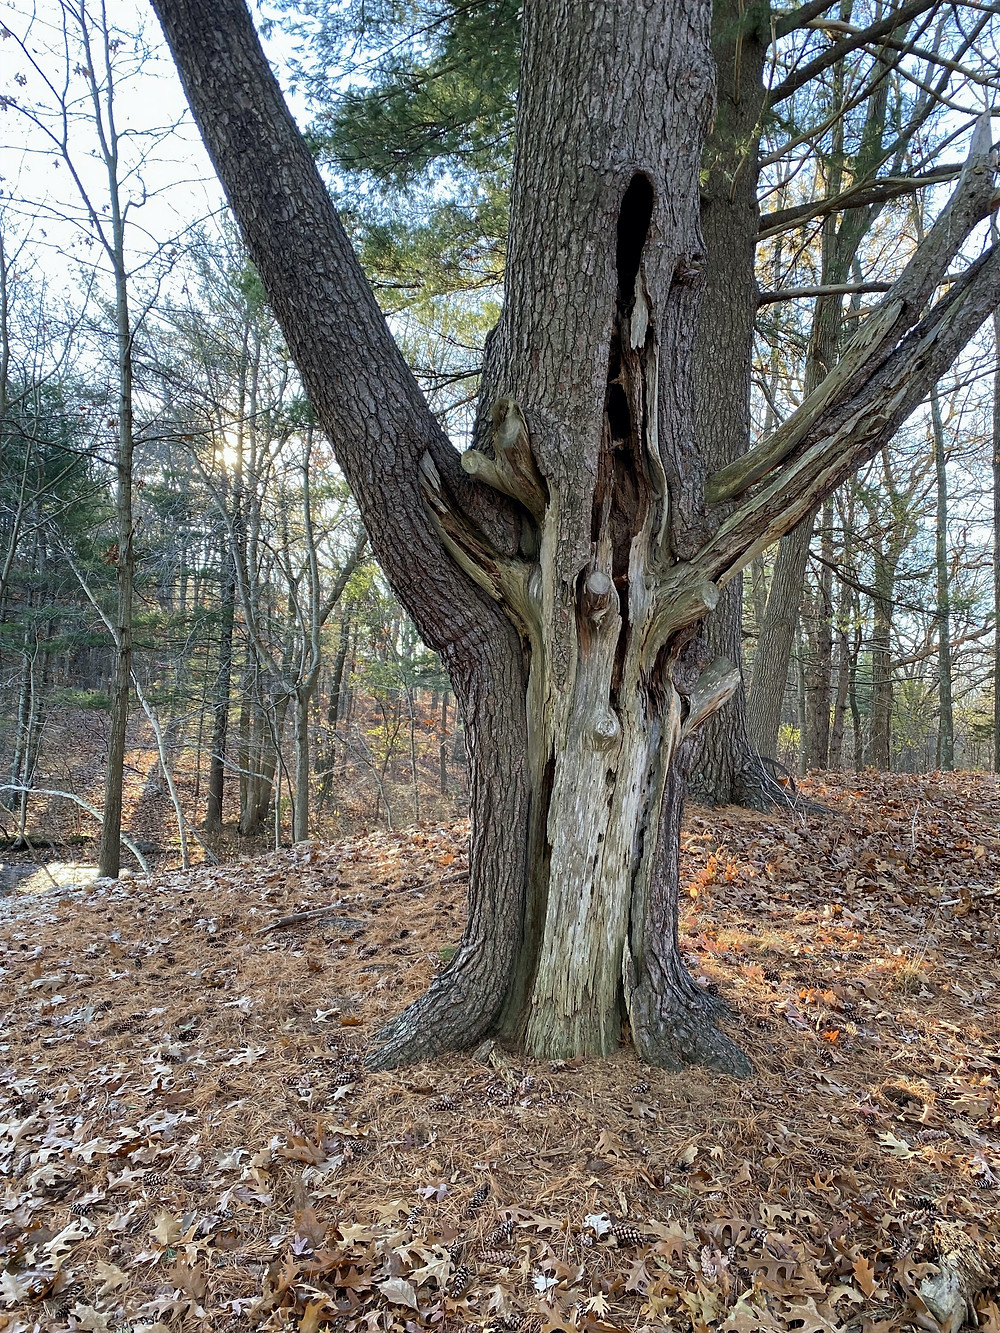 An old tree that is dying from the outside in